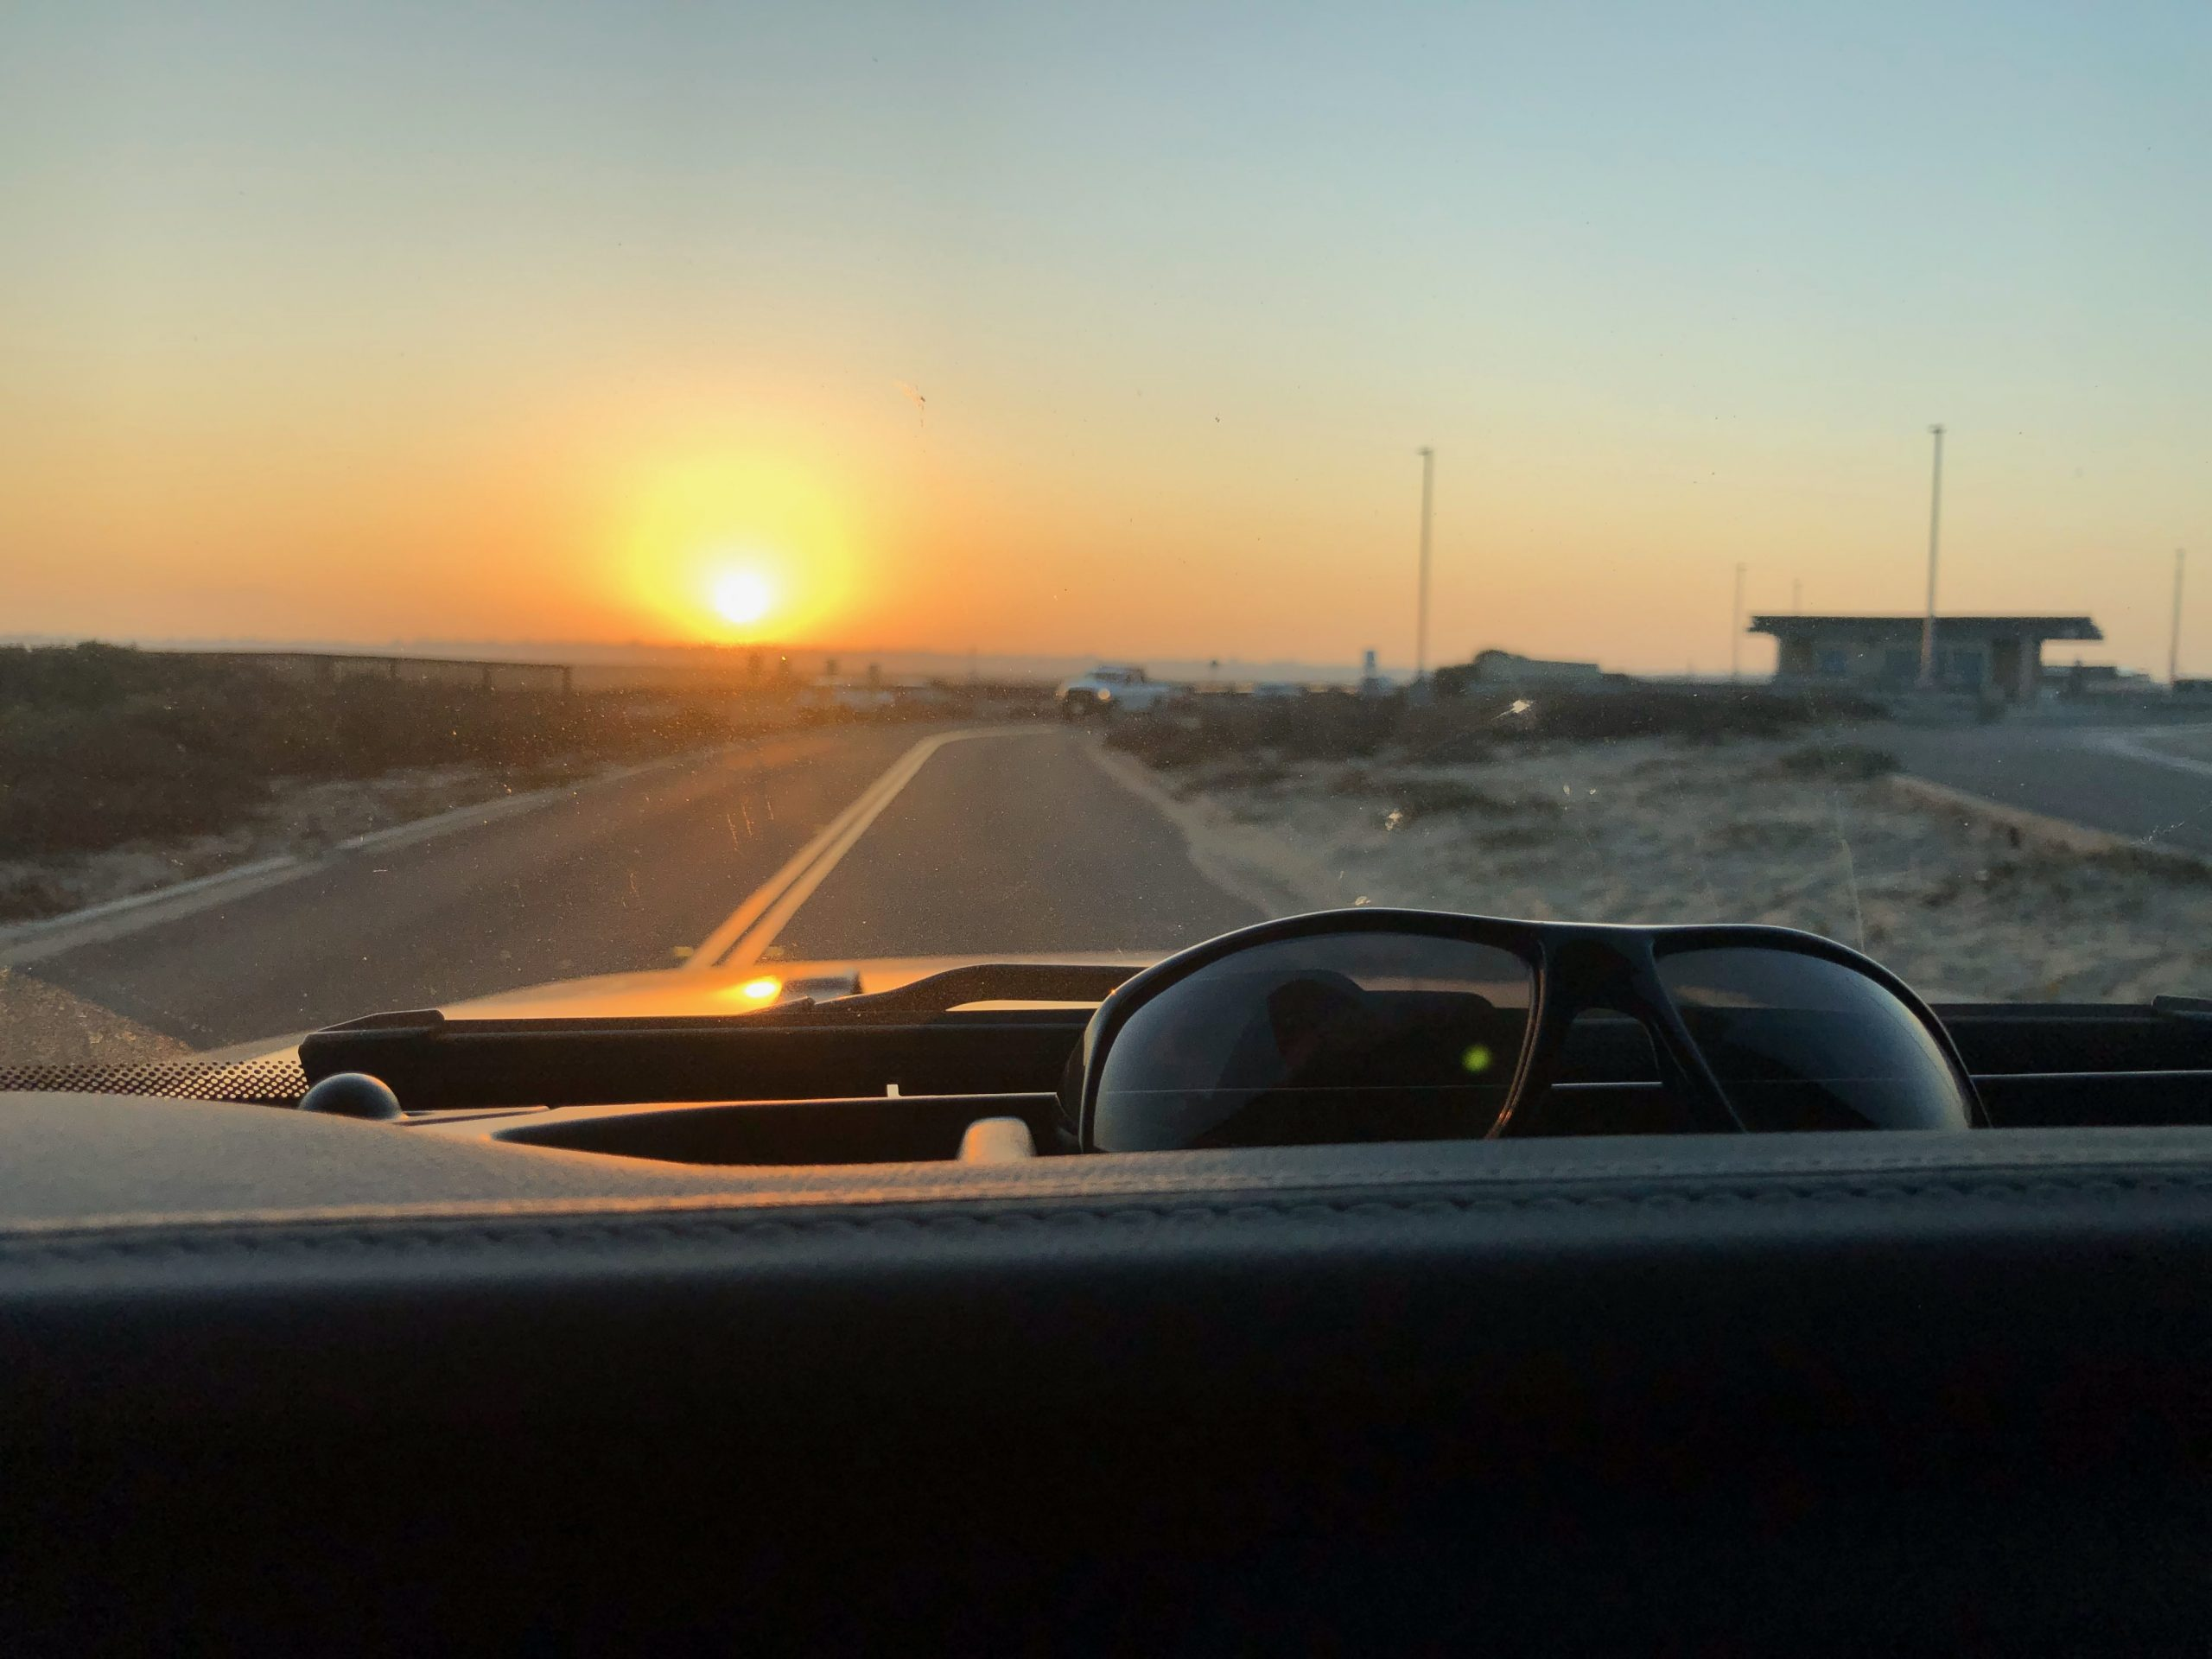 sunrise from jeep on early bum trek